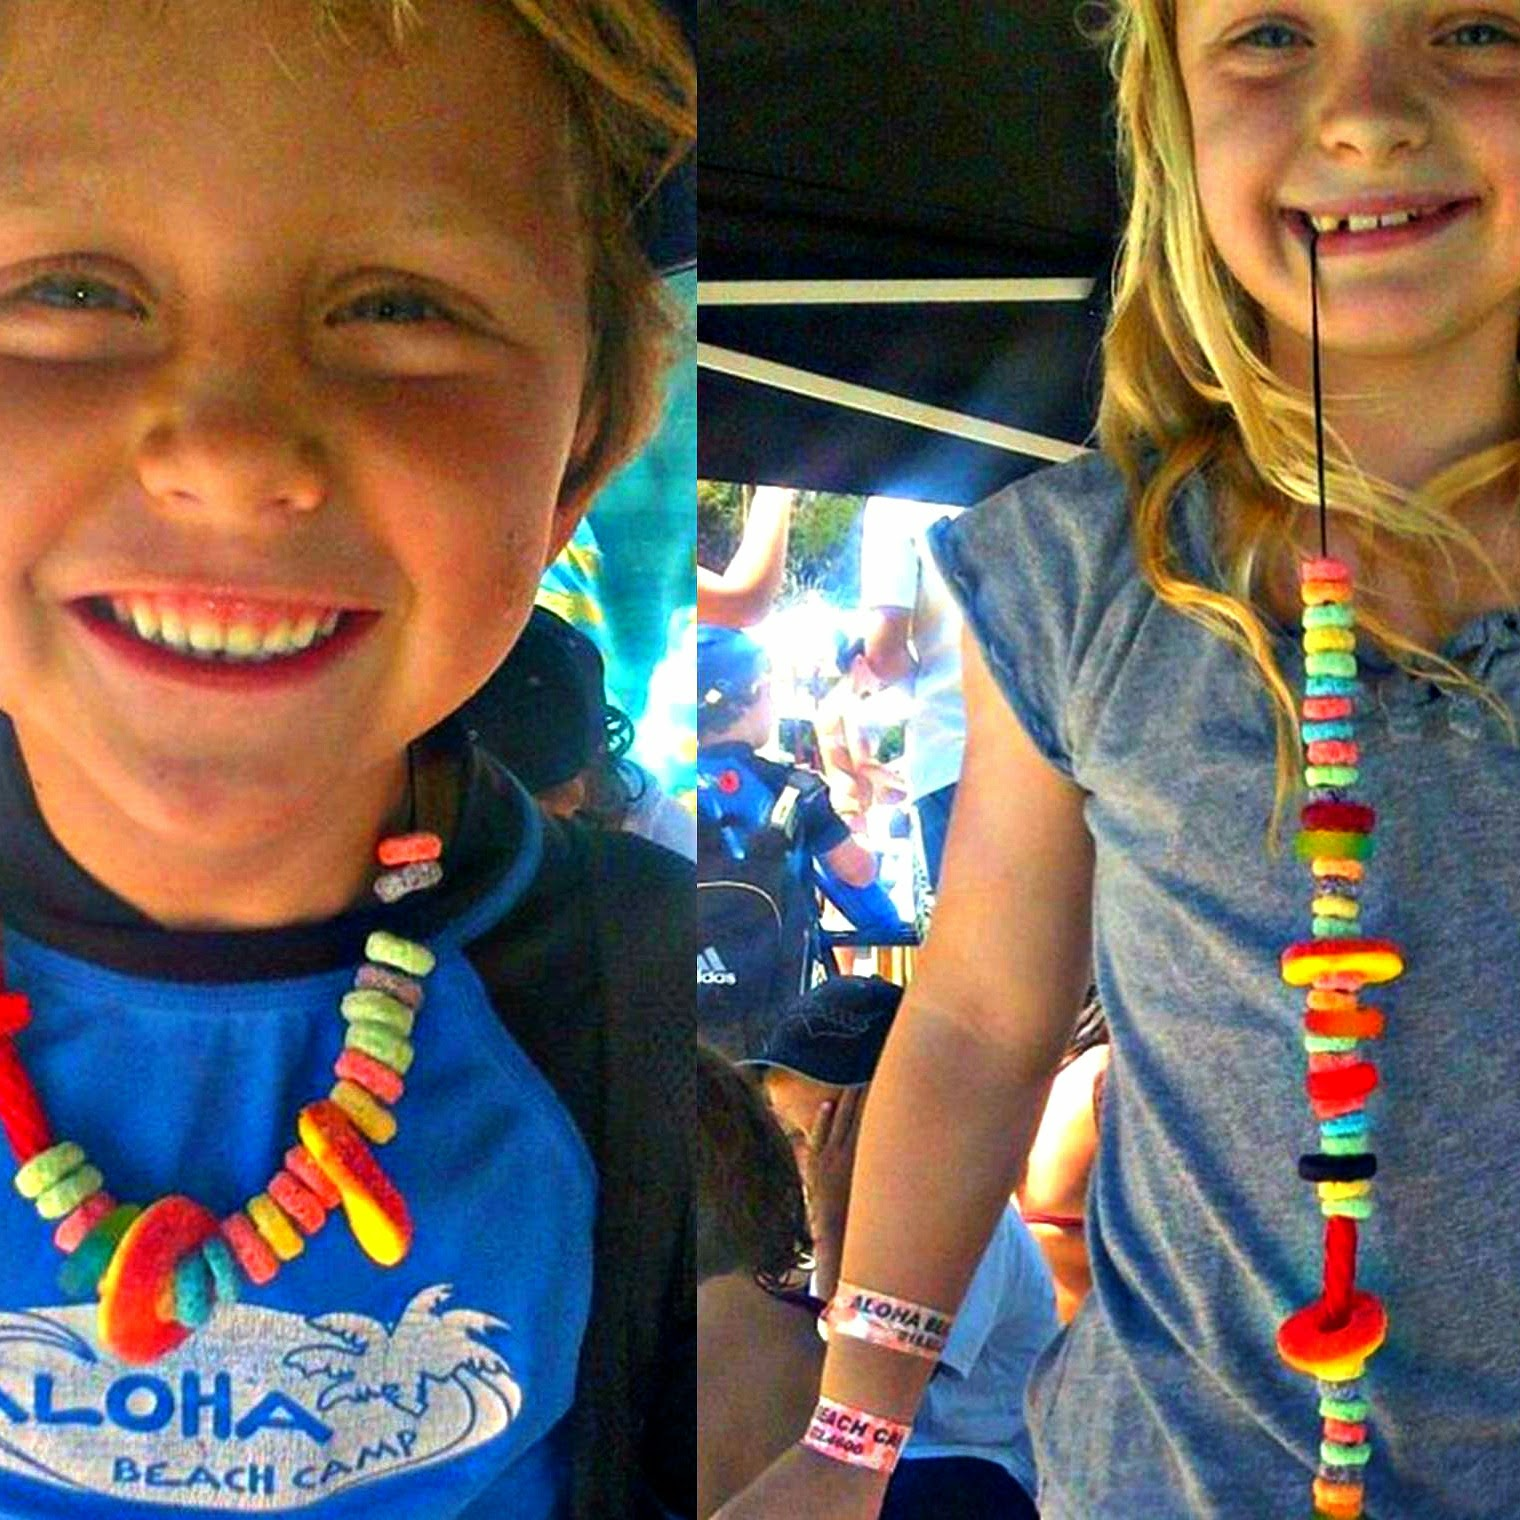 Aloha Beach Camp kids wearing candy leis they made at camp.